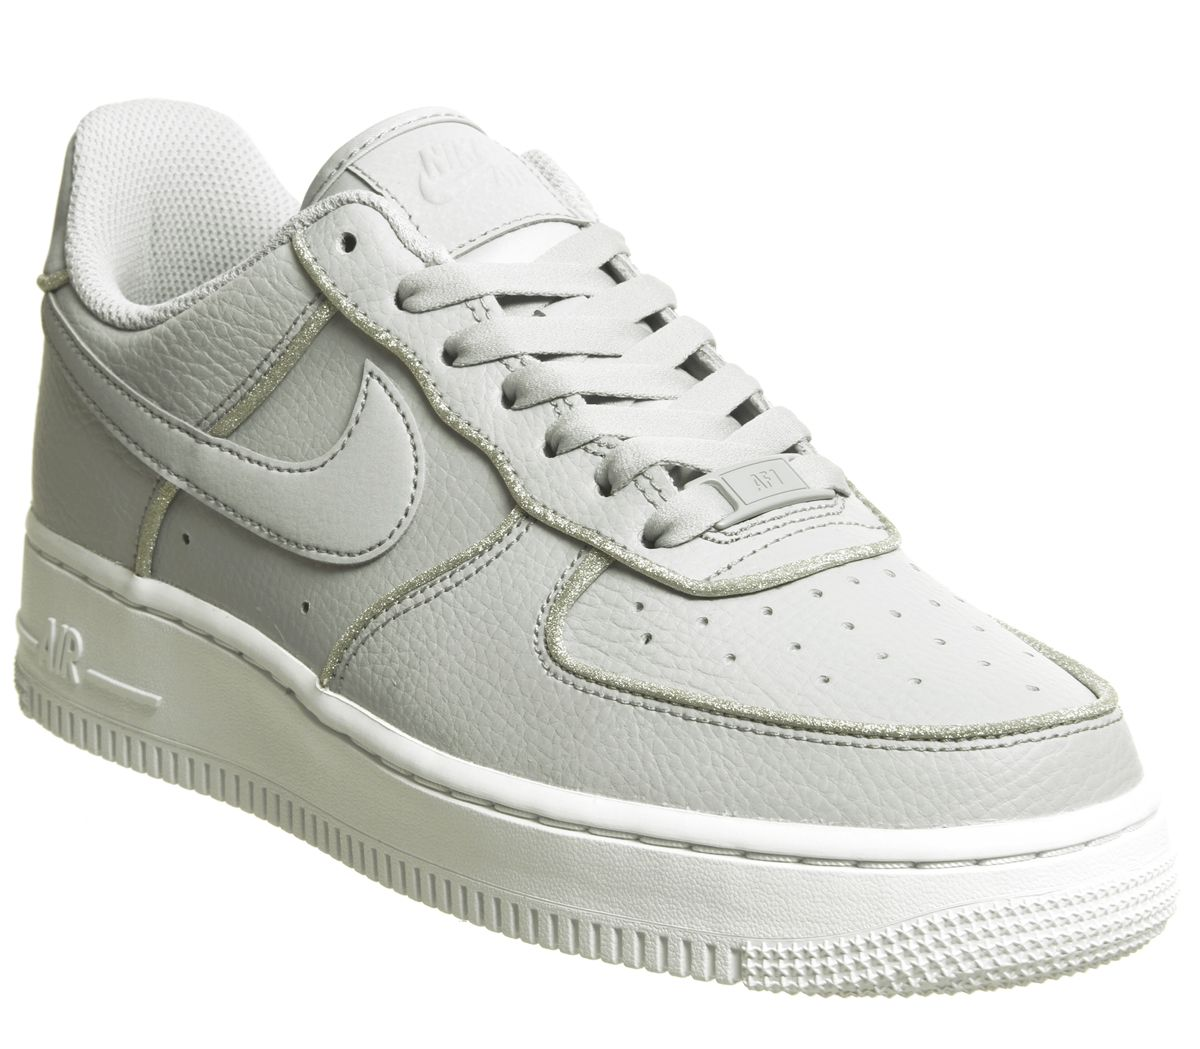 newest eefc7 03f0c Nike Air Force 1 07 Trainers Wolf Grey Glitter - Hers trainers